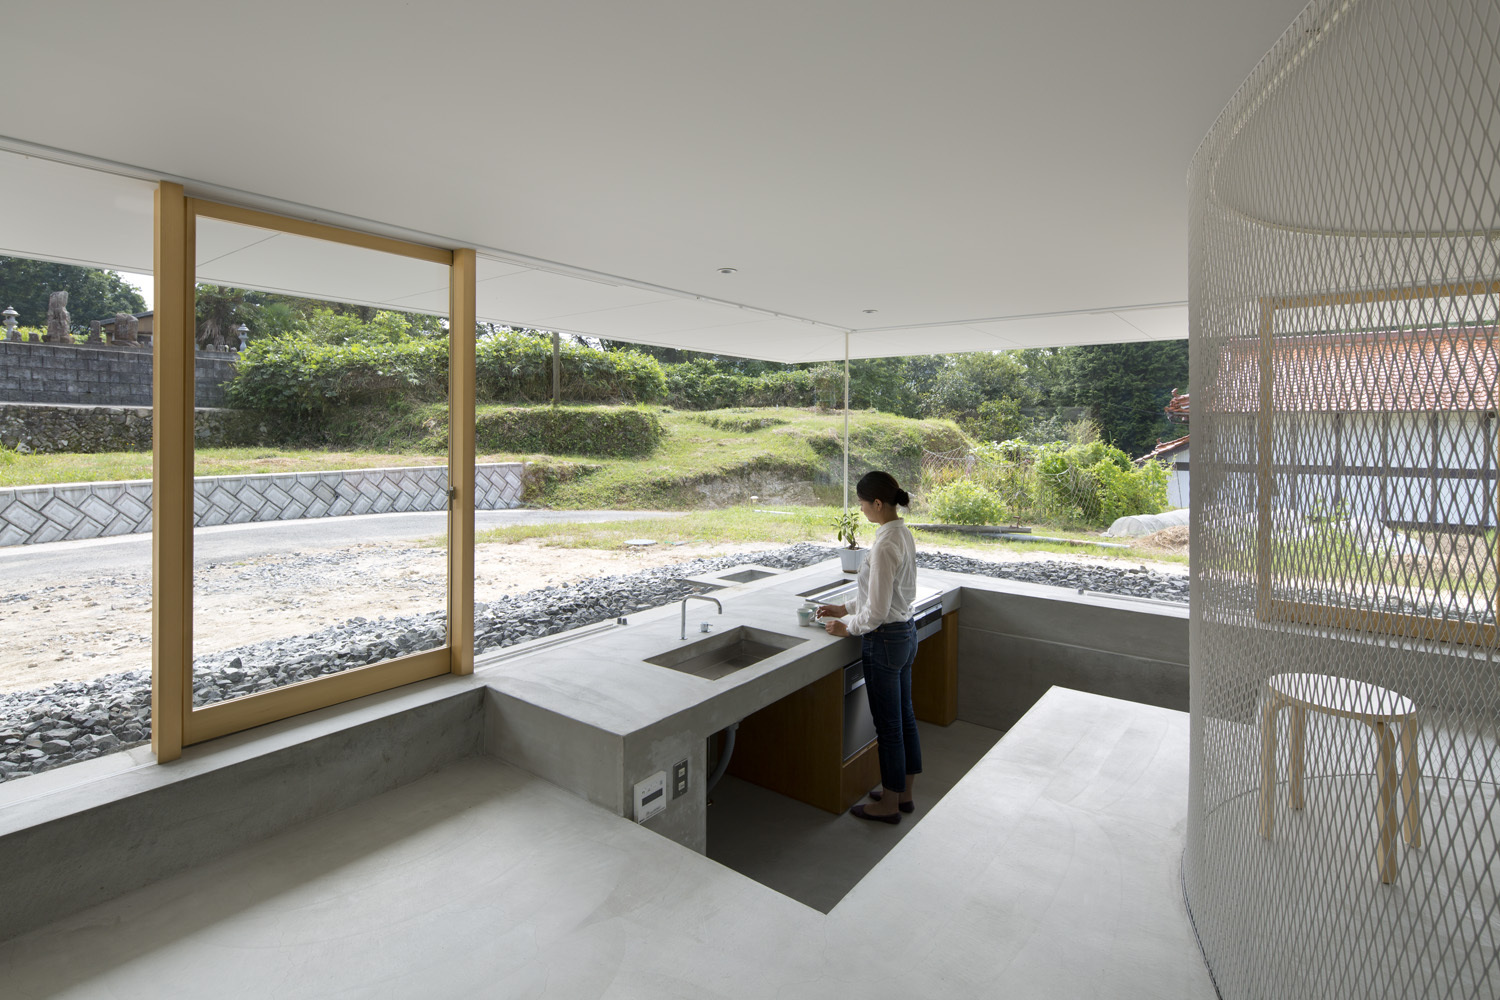 office by design. Makoto Tanijiri On Architectural Education And \u201cJapanese-ness\u201d In Design, \u003ca Office By Design